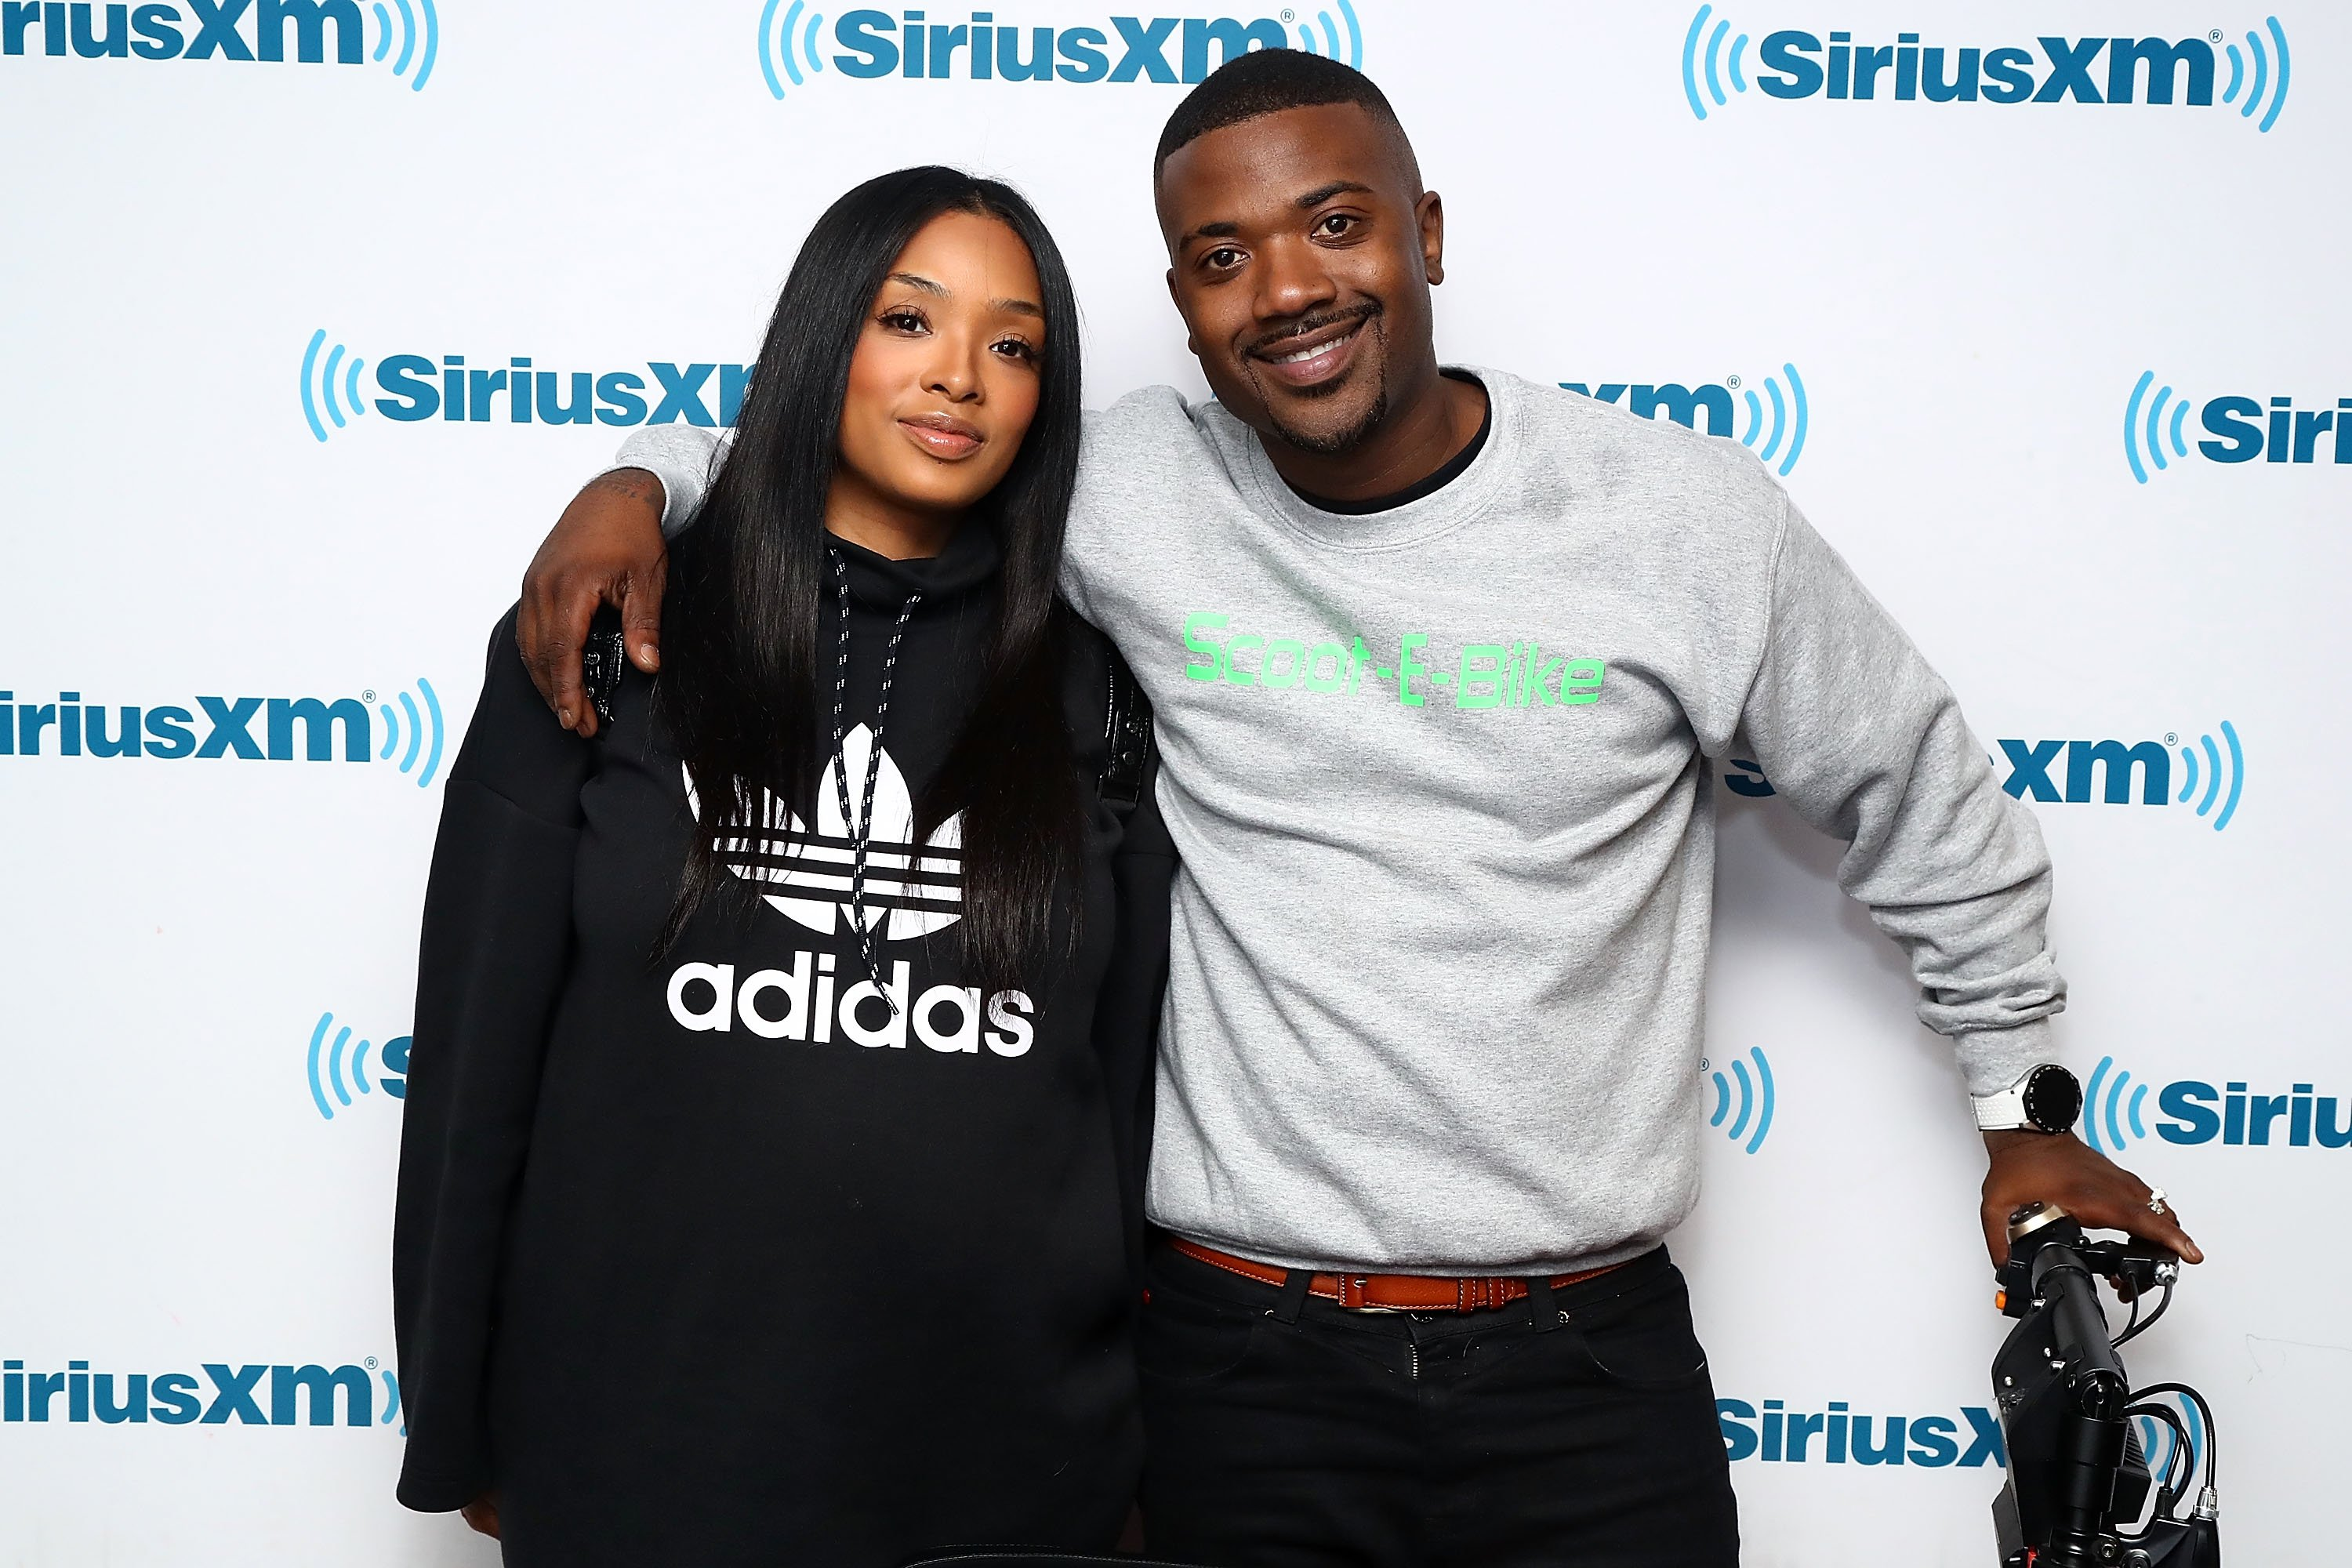 Princess Love and Ray J at SiriusXM's studio in March 2018. | Photo: Getty Images